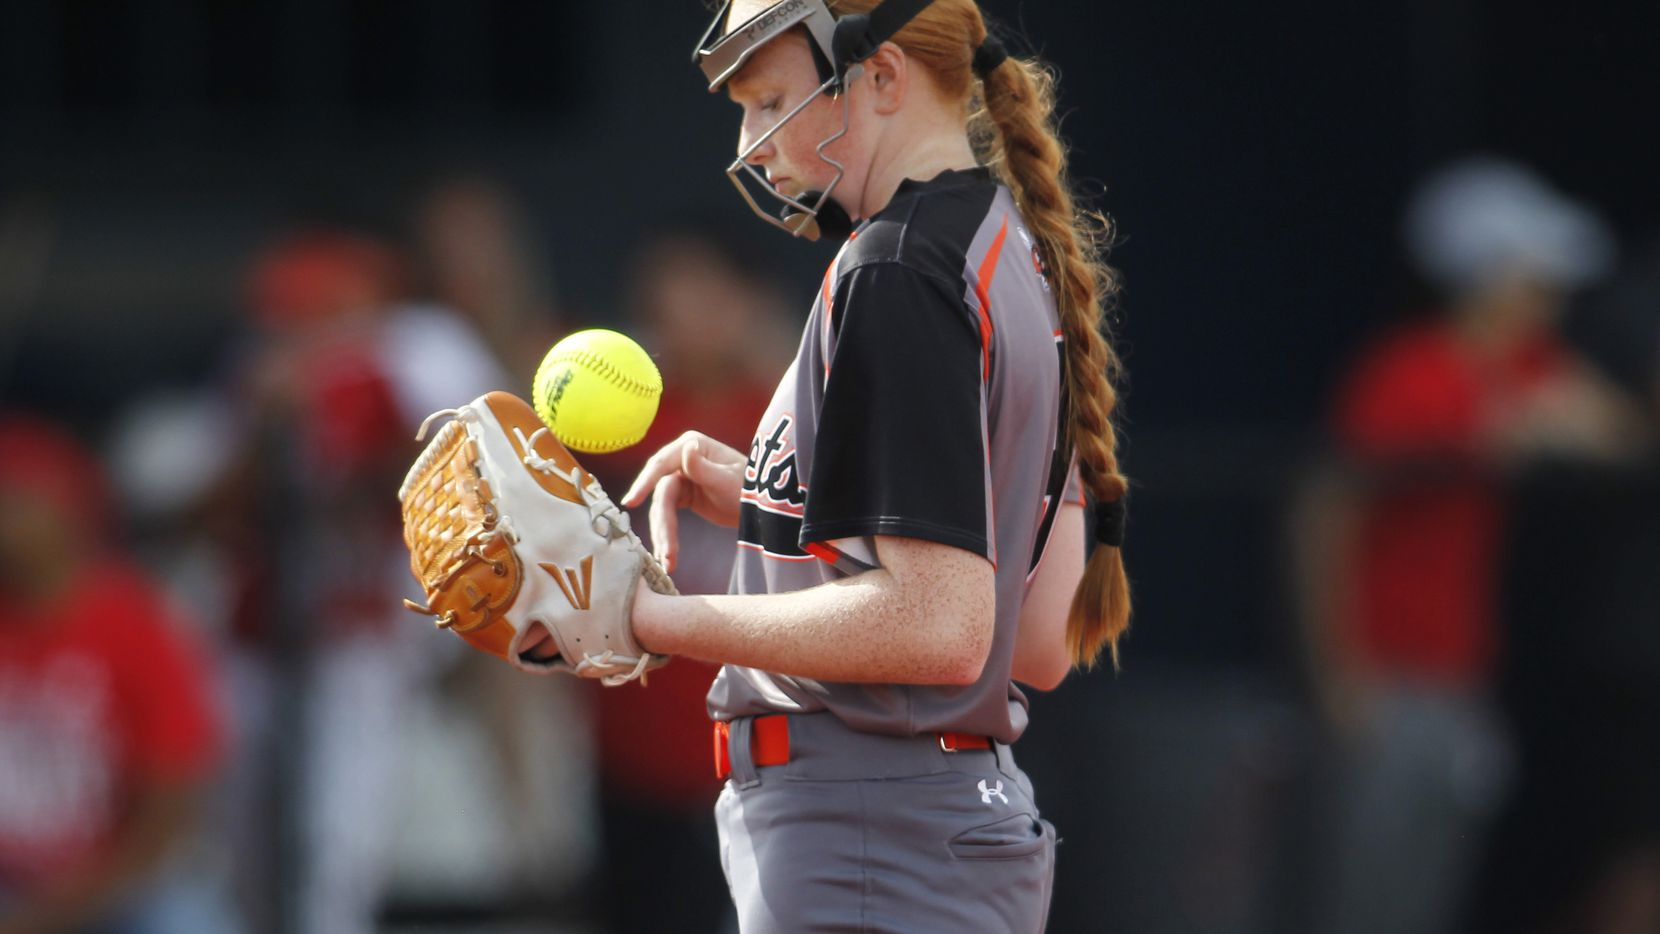 Rockwell's Ainsley Pemberton (9) takes a moment between pitches during the bottom of the 3rd inning against Converse Judson. The two teams played their UIL 6A state softball semifinal game at Leander Glenn High School in Leander on June 4, 2021. (Steve Hamm/ Special Contributor)